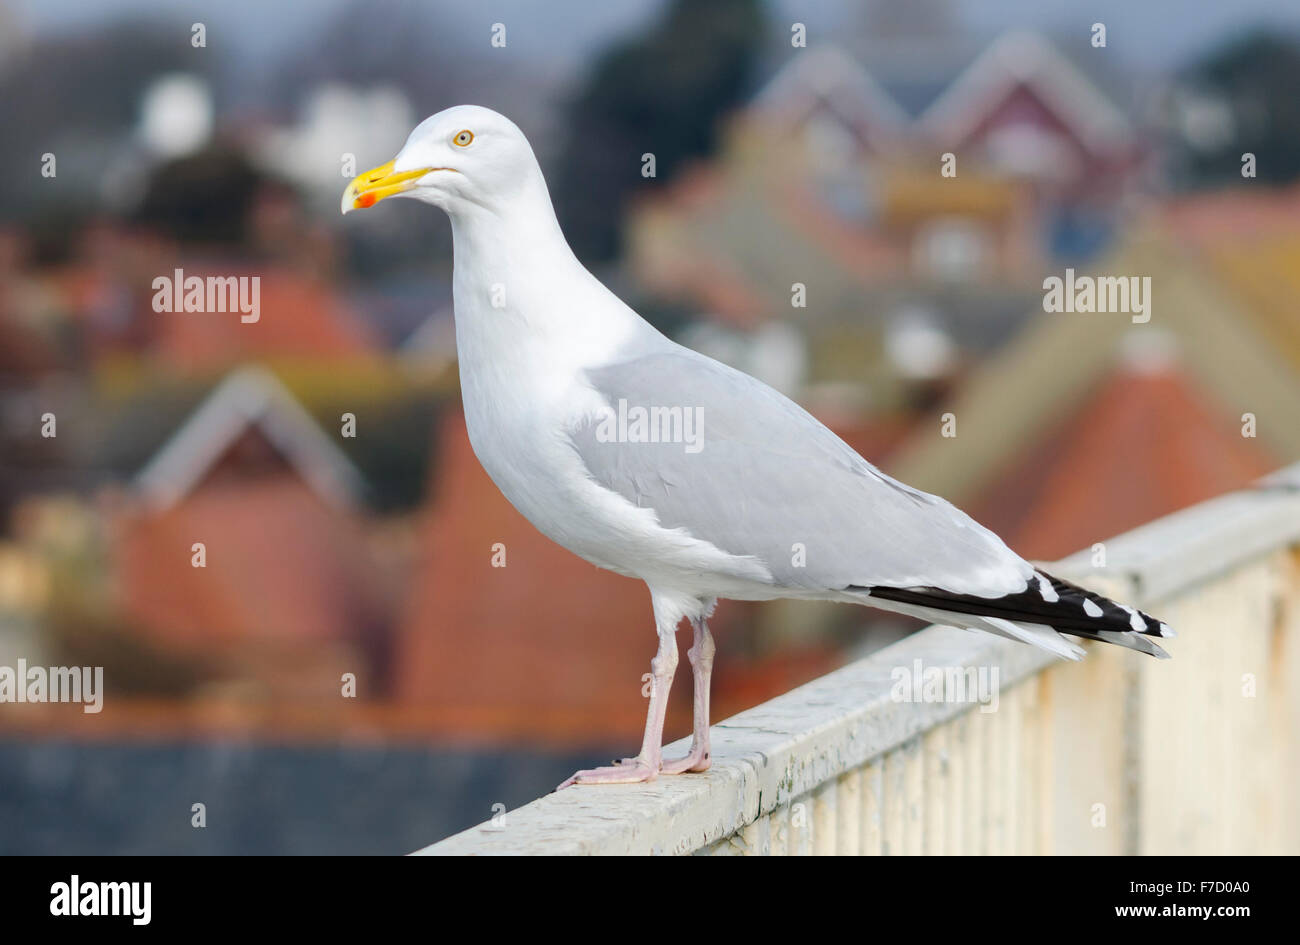 Adult Herring Gull (Larus Argentatus) in Spring standing above house rooftops overlooking a town in the UK. Seagull - Stock Image